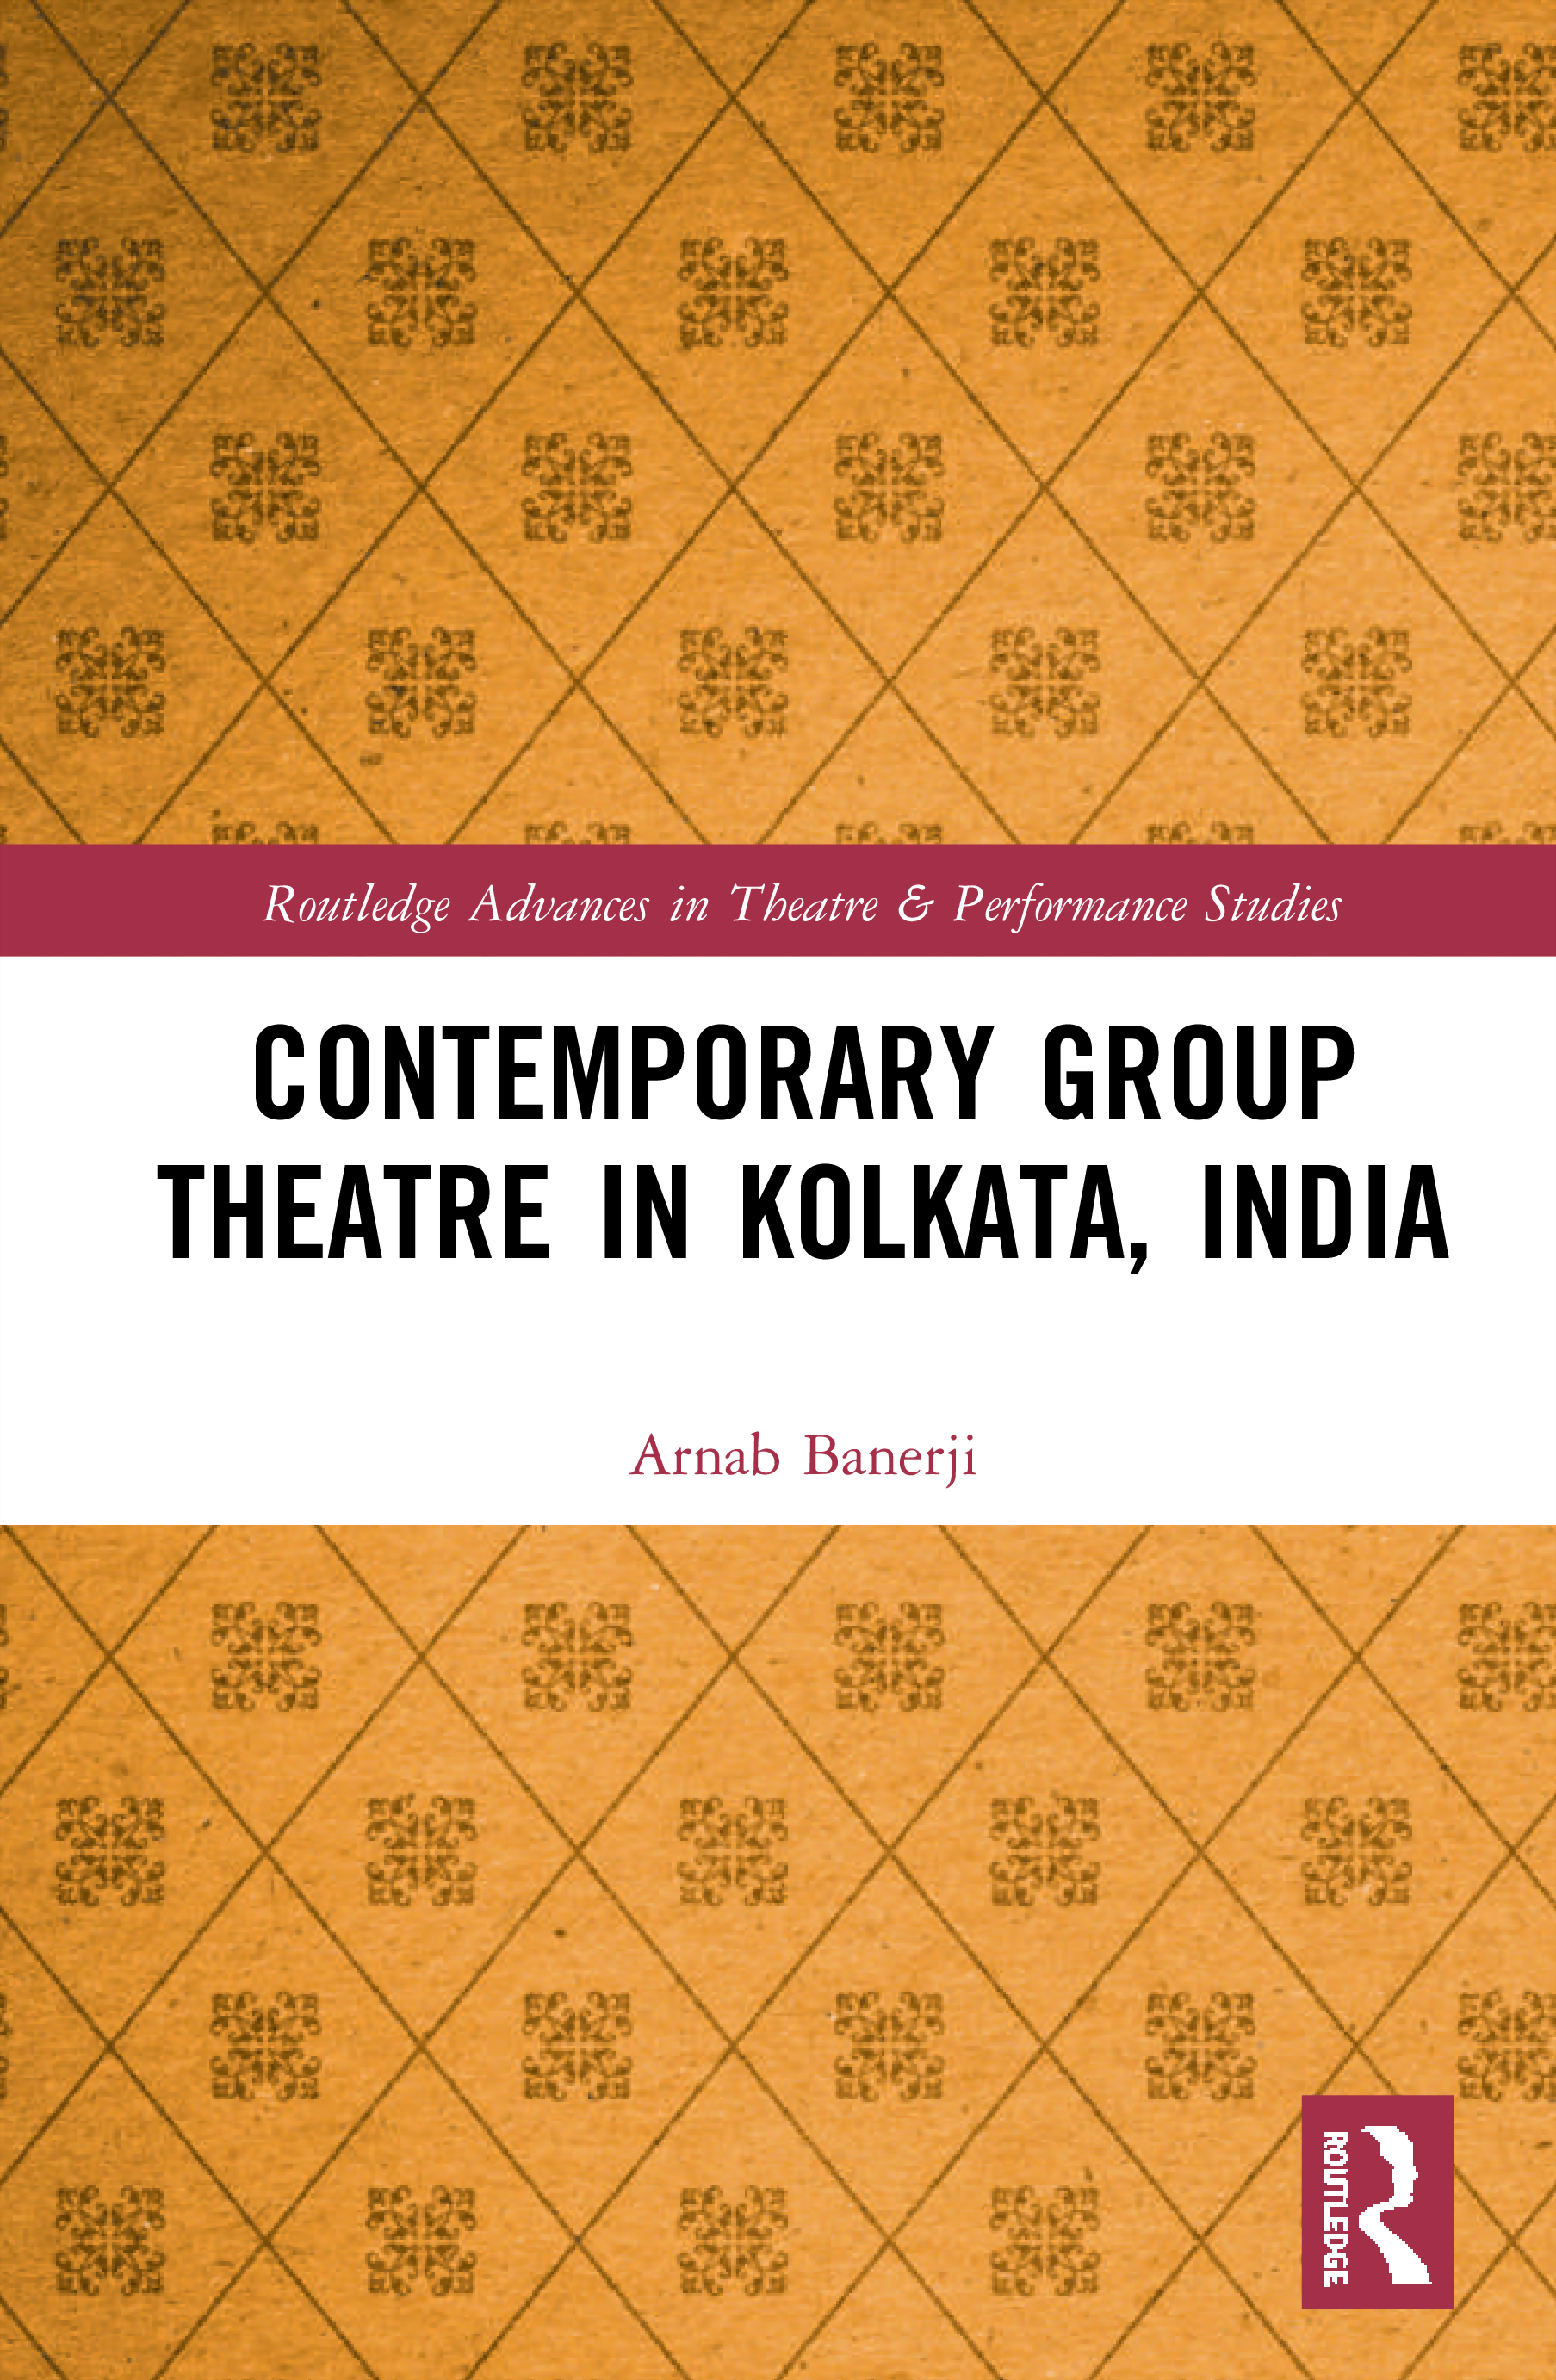 Contemporary Group Theatre in Kolkata, India book cover